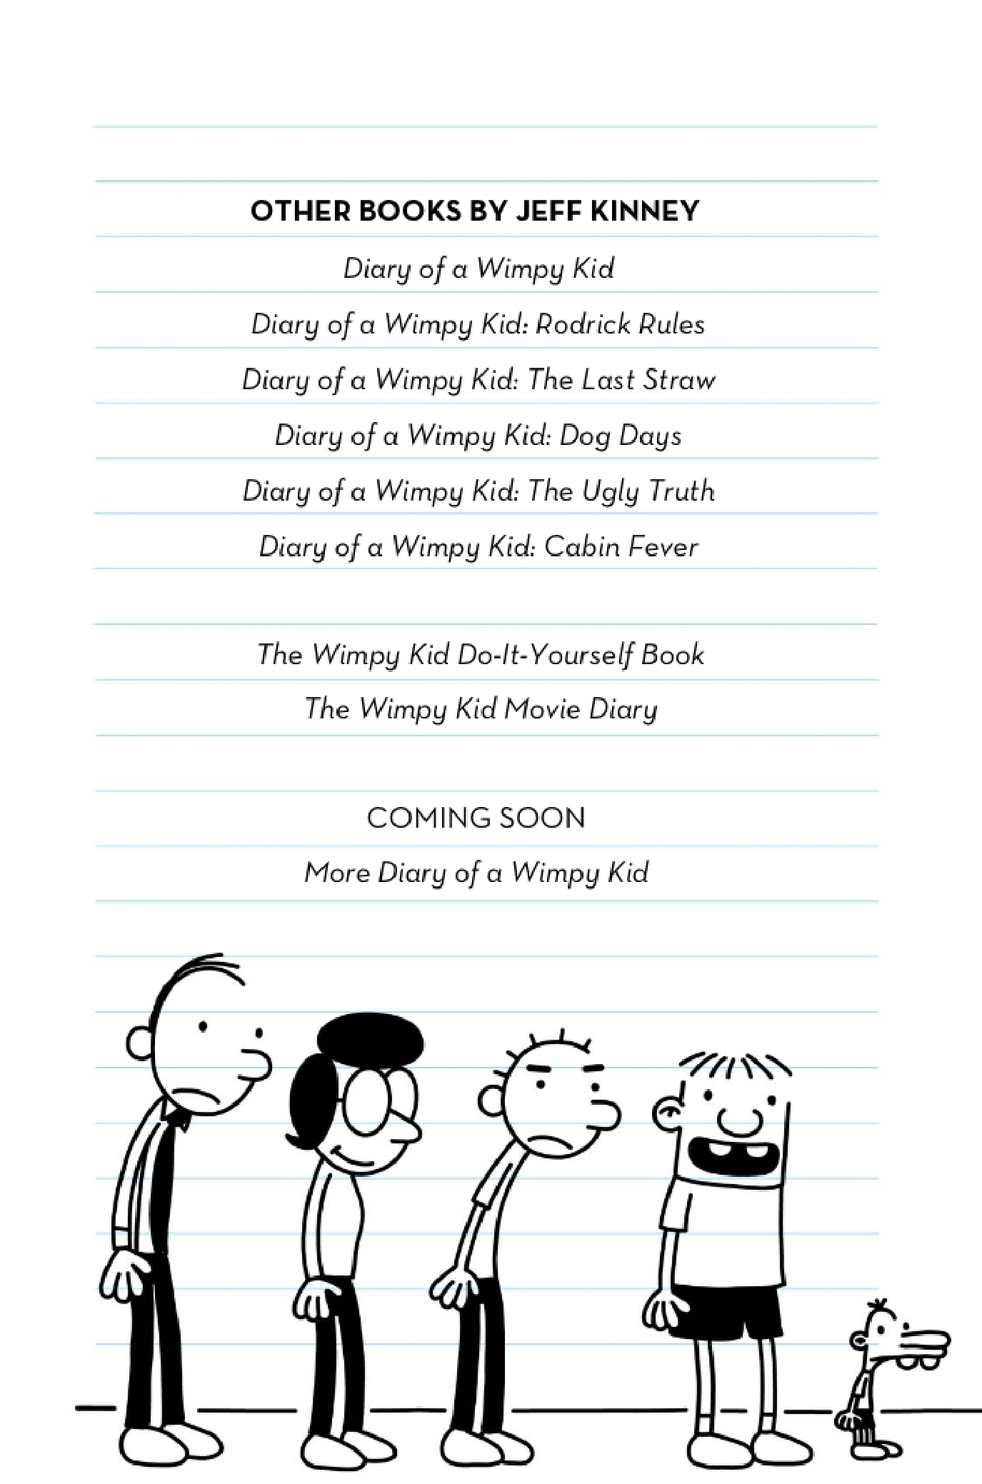 Diary of a wimpy kid 7 the third wheel calameo downloader page 4 solutioingenieria Gallery